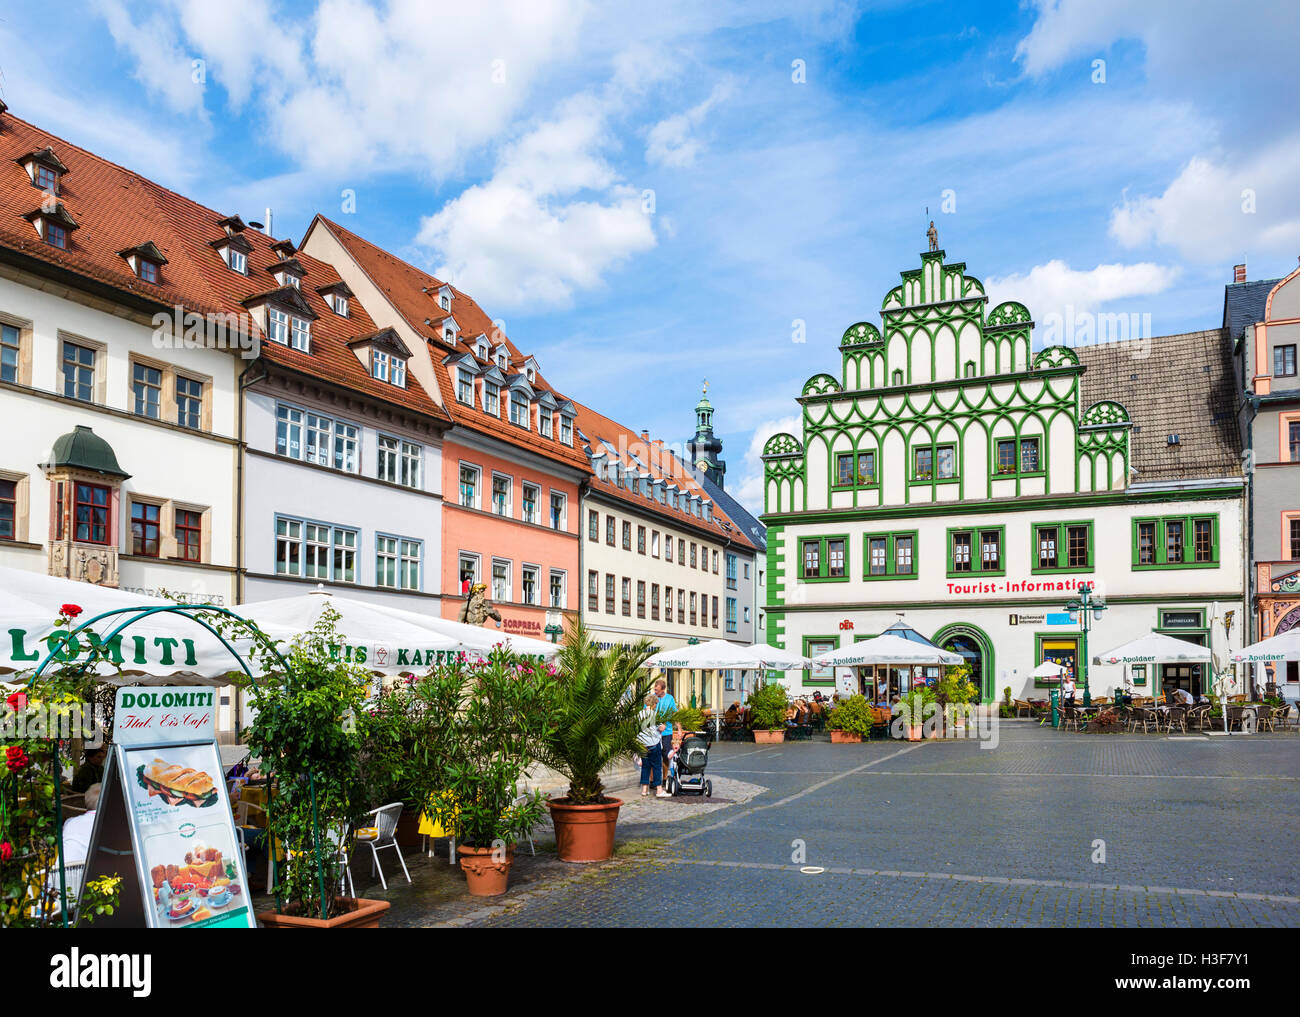 The Market Square (Markt) in the old town, Weimar, Thuringia, Germany - Stock Image